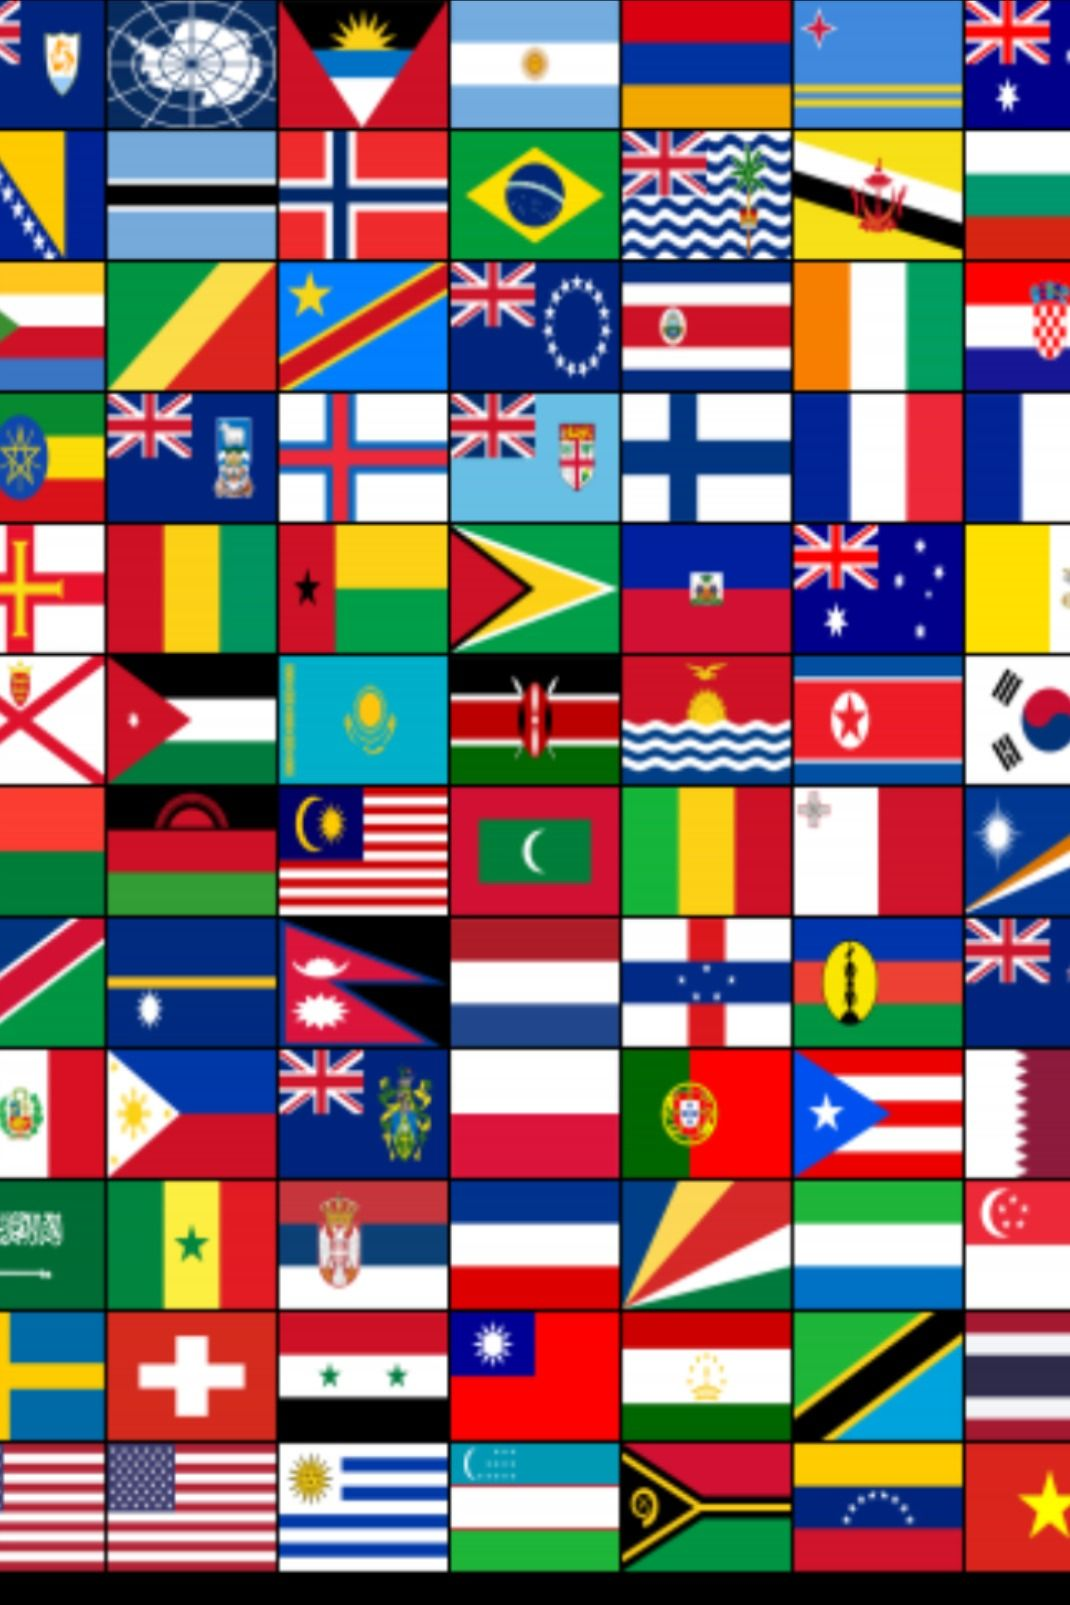 Download Free All Country Flags In 2020 Country Flags Icons Flag Icon All Country Flags